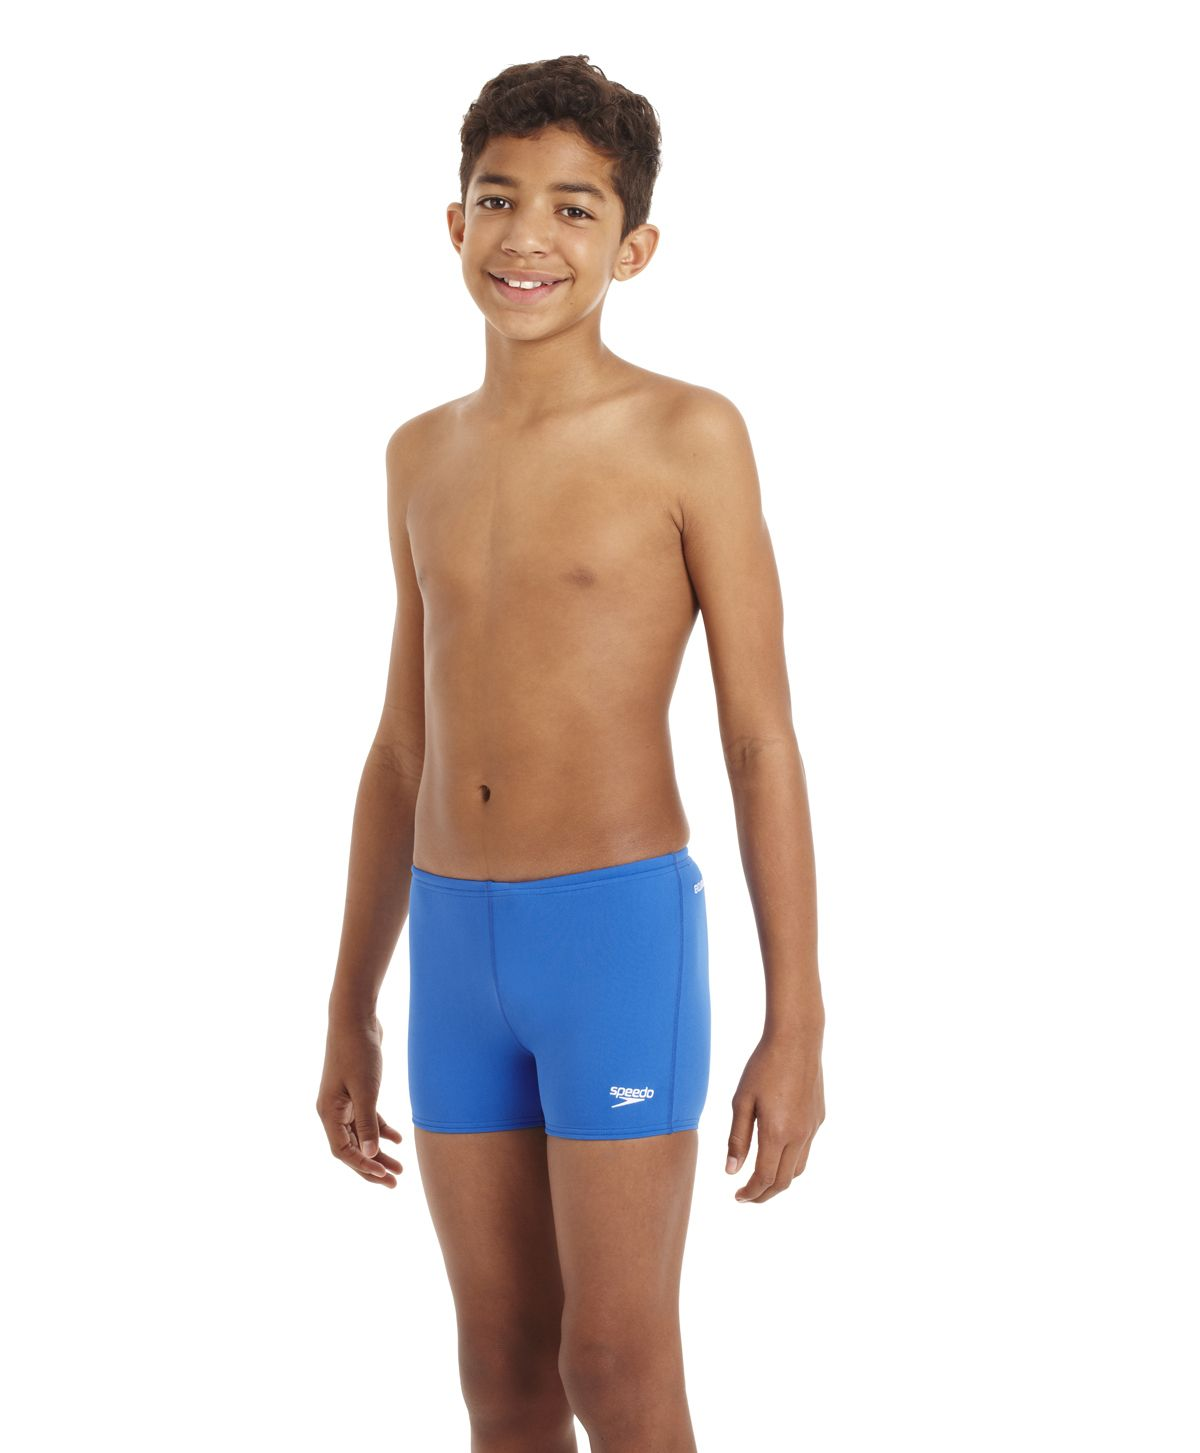 1a3758ef0a 40% off (sizes 22, 32) : Speedo Swim Short Endurance Plus Neon Blue 7302610  Junior Swim Shorts